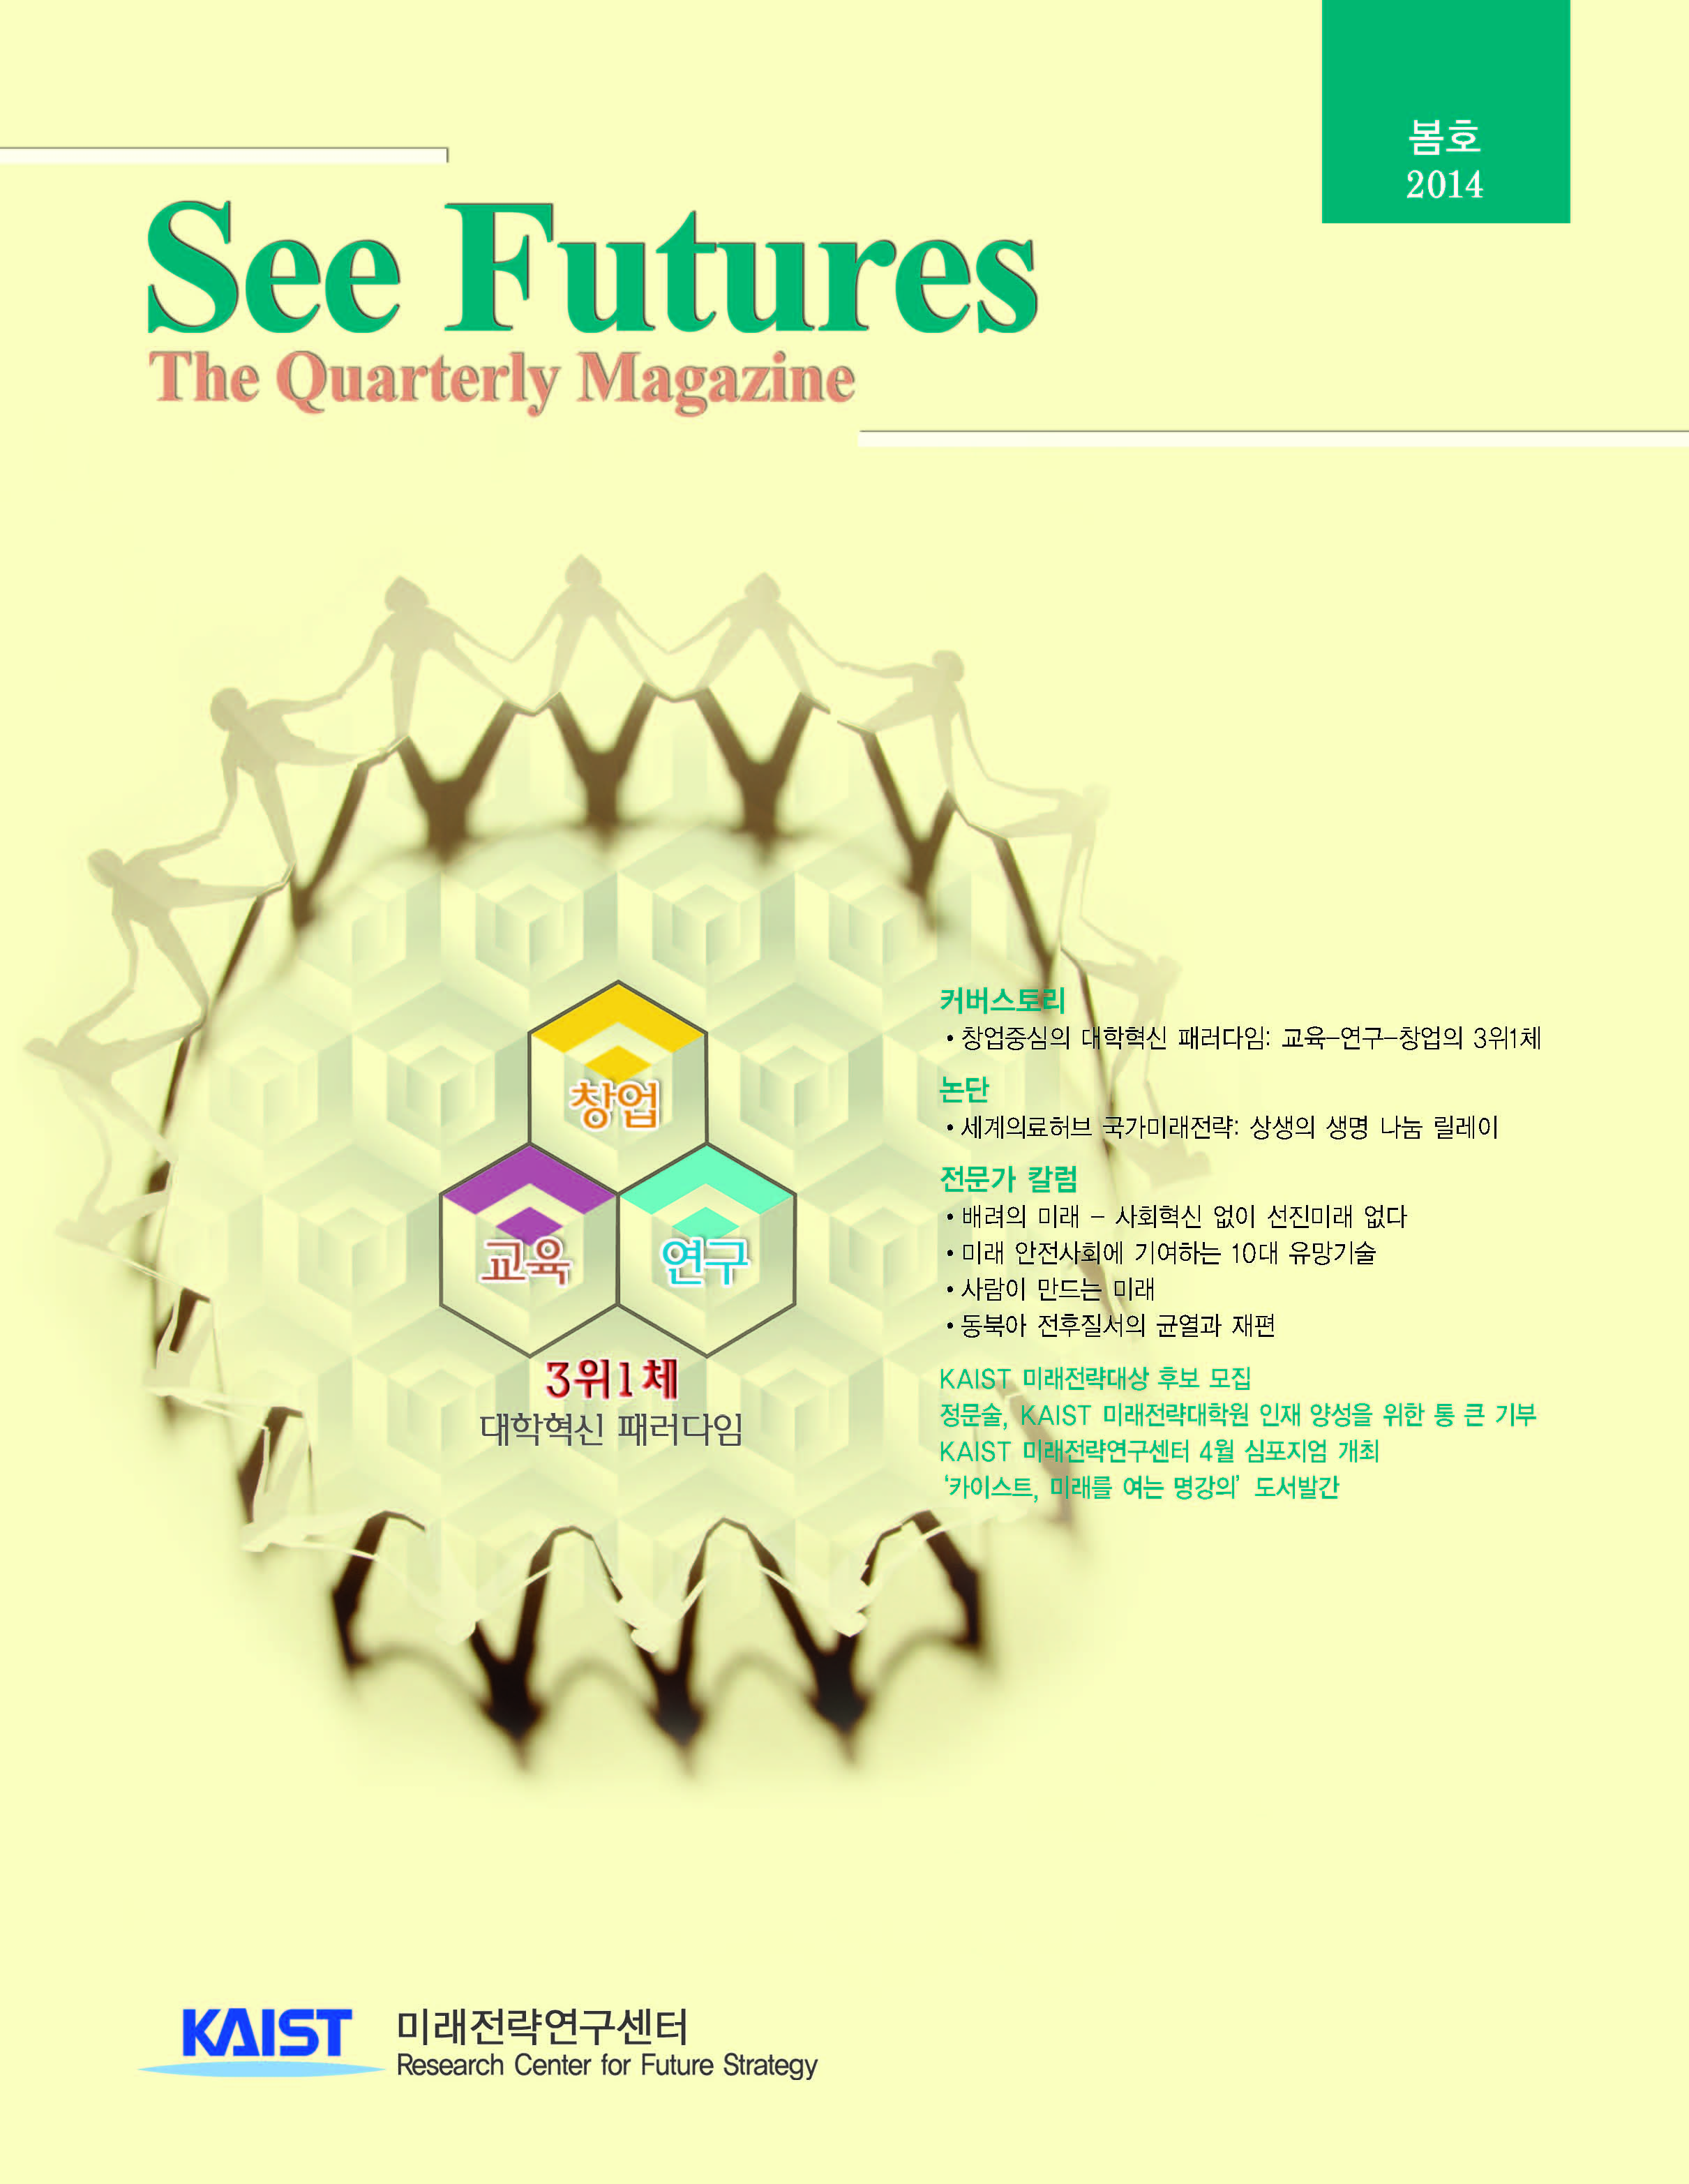 See Futures Spring 2014 (제 2호)